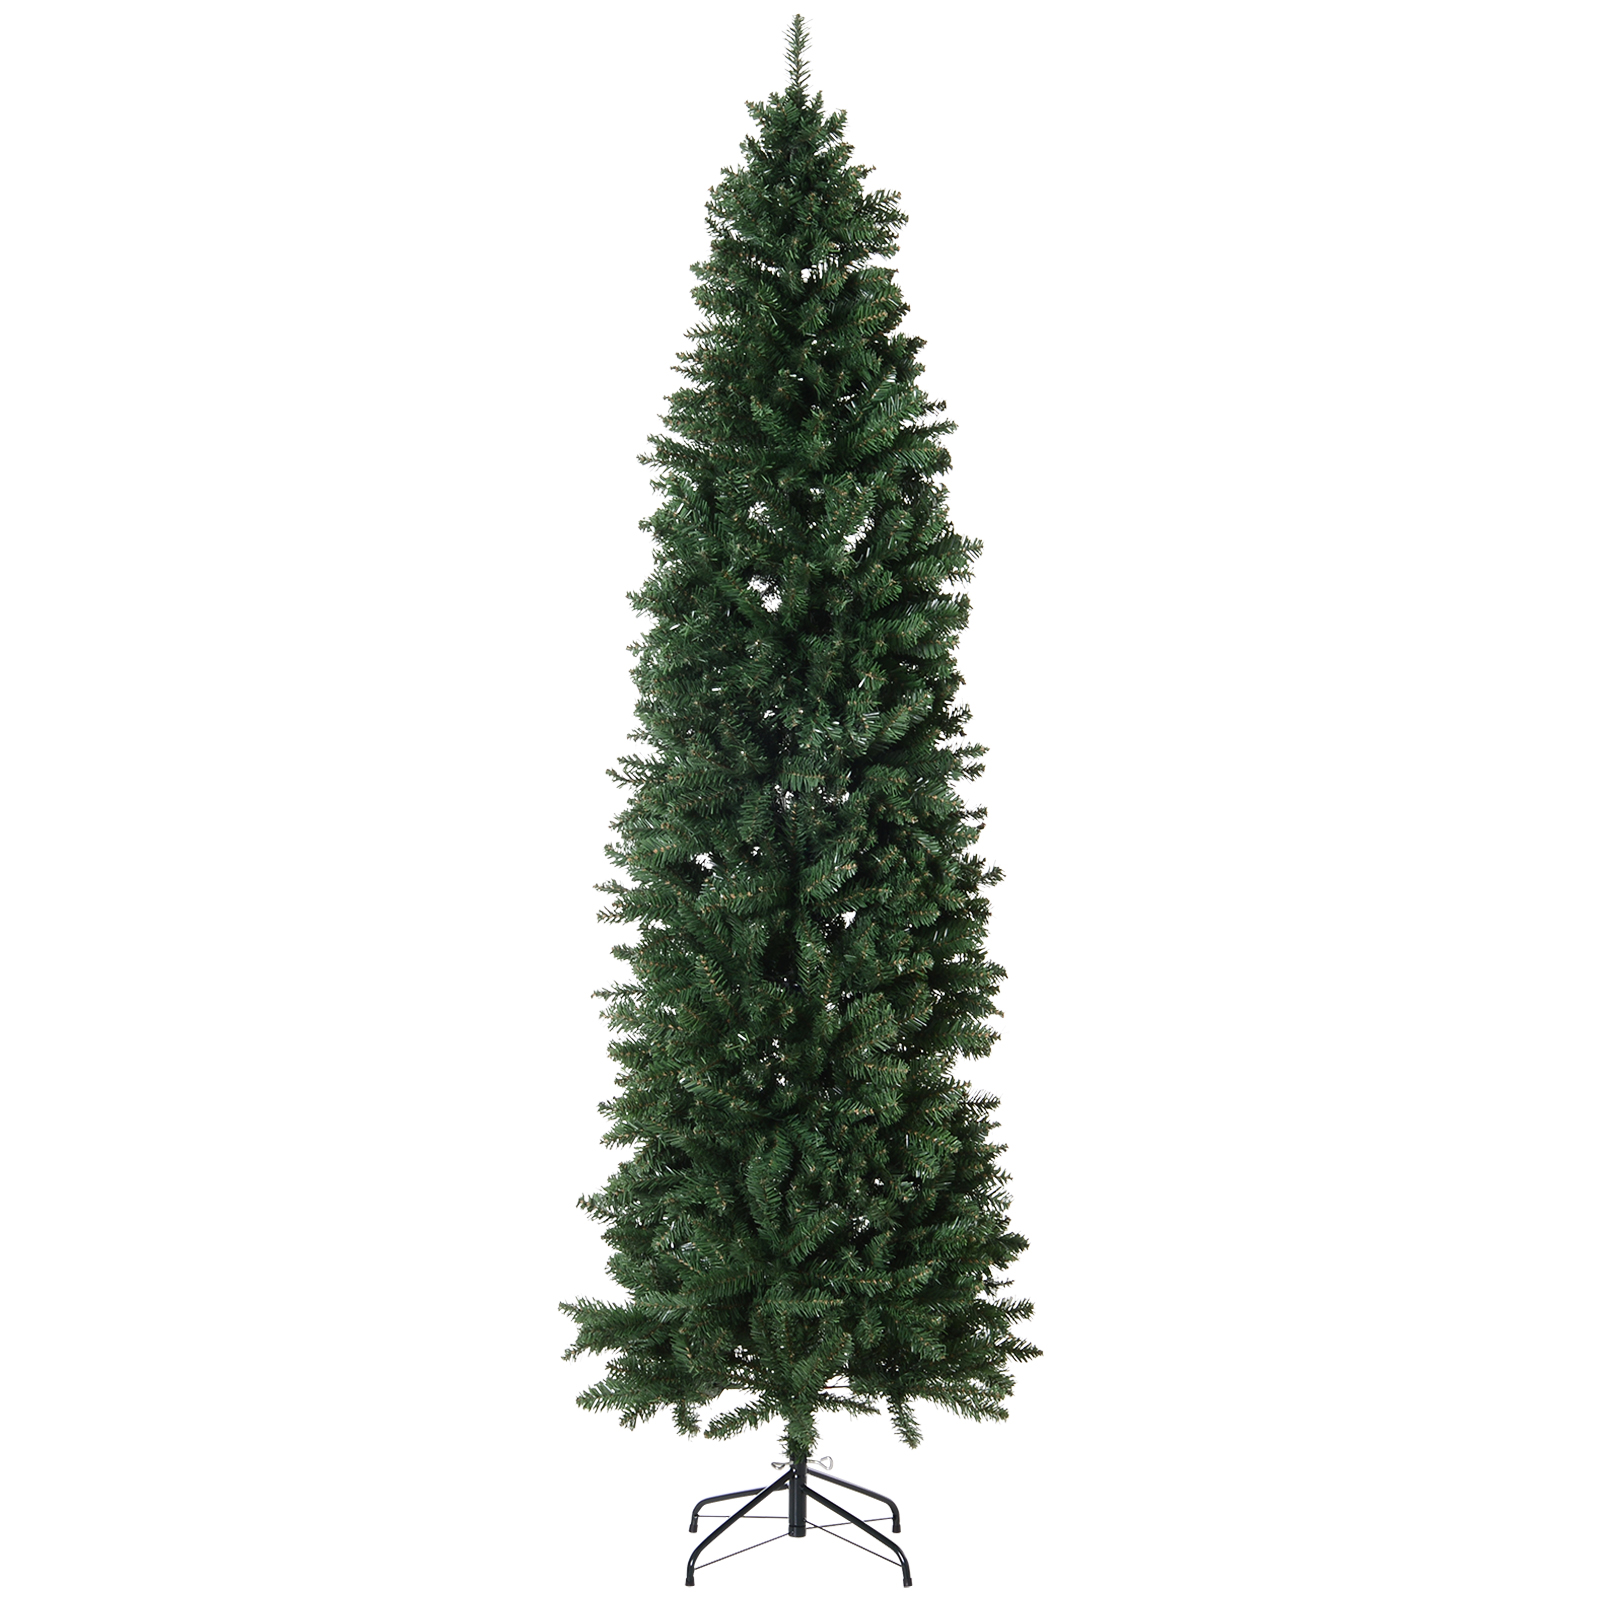 HOMCOM Unlit Slim Fir Artificial Christmas Tree with Realistic Branches and 1075 Tips, 7.5' Tall